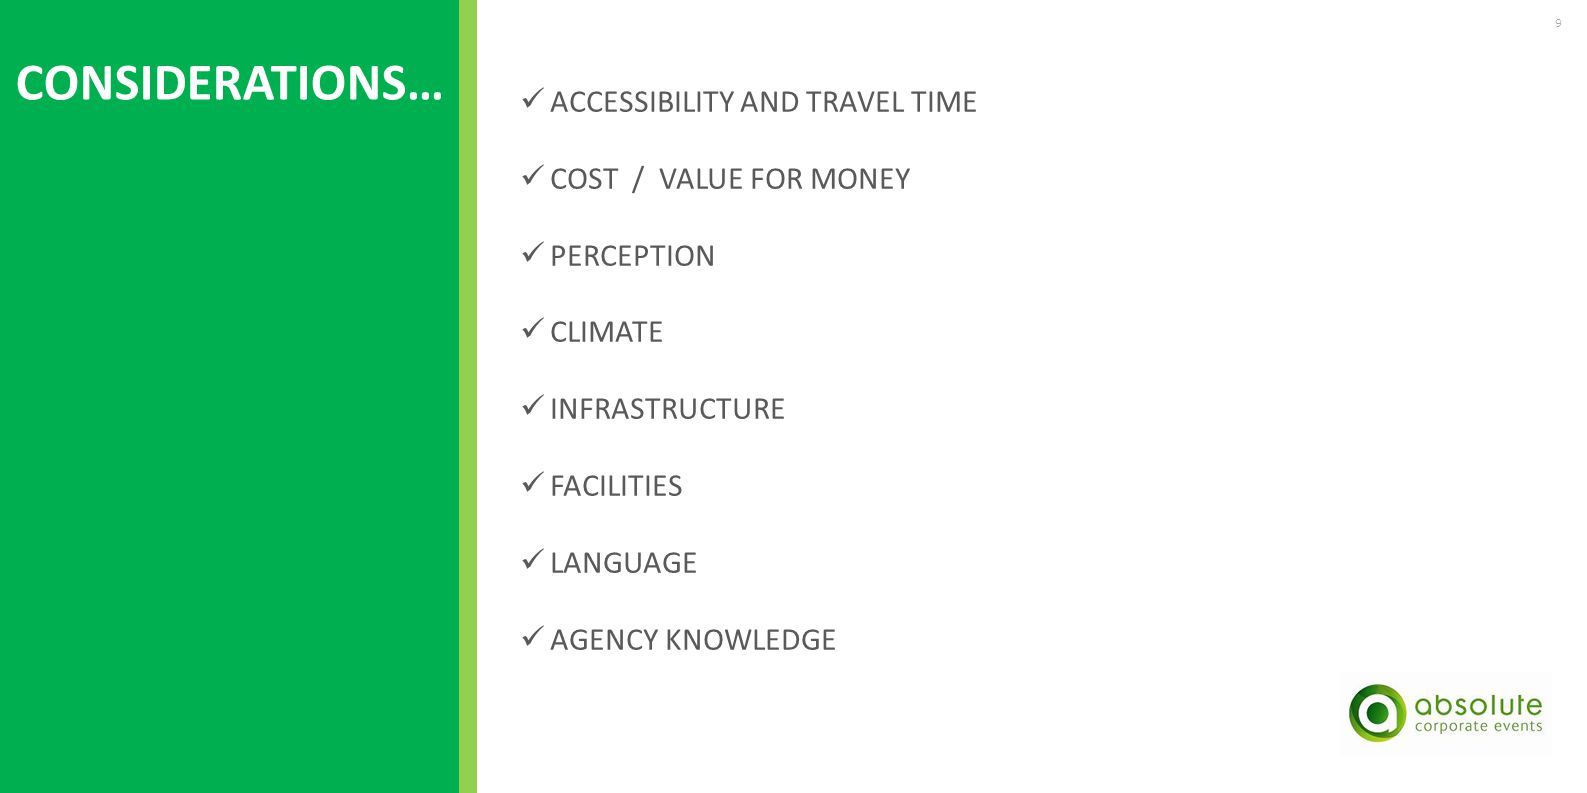 9 ACCESSIBILITY AND TRAVEL TIME COST / VALUE FOR MONEY PERCEPTION CLIMATE INFRASTRUCTURE FACILITIES LANGUAGE AGENCY KNOWLEDGE CONSIDERATIONS…